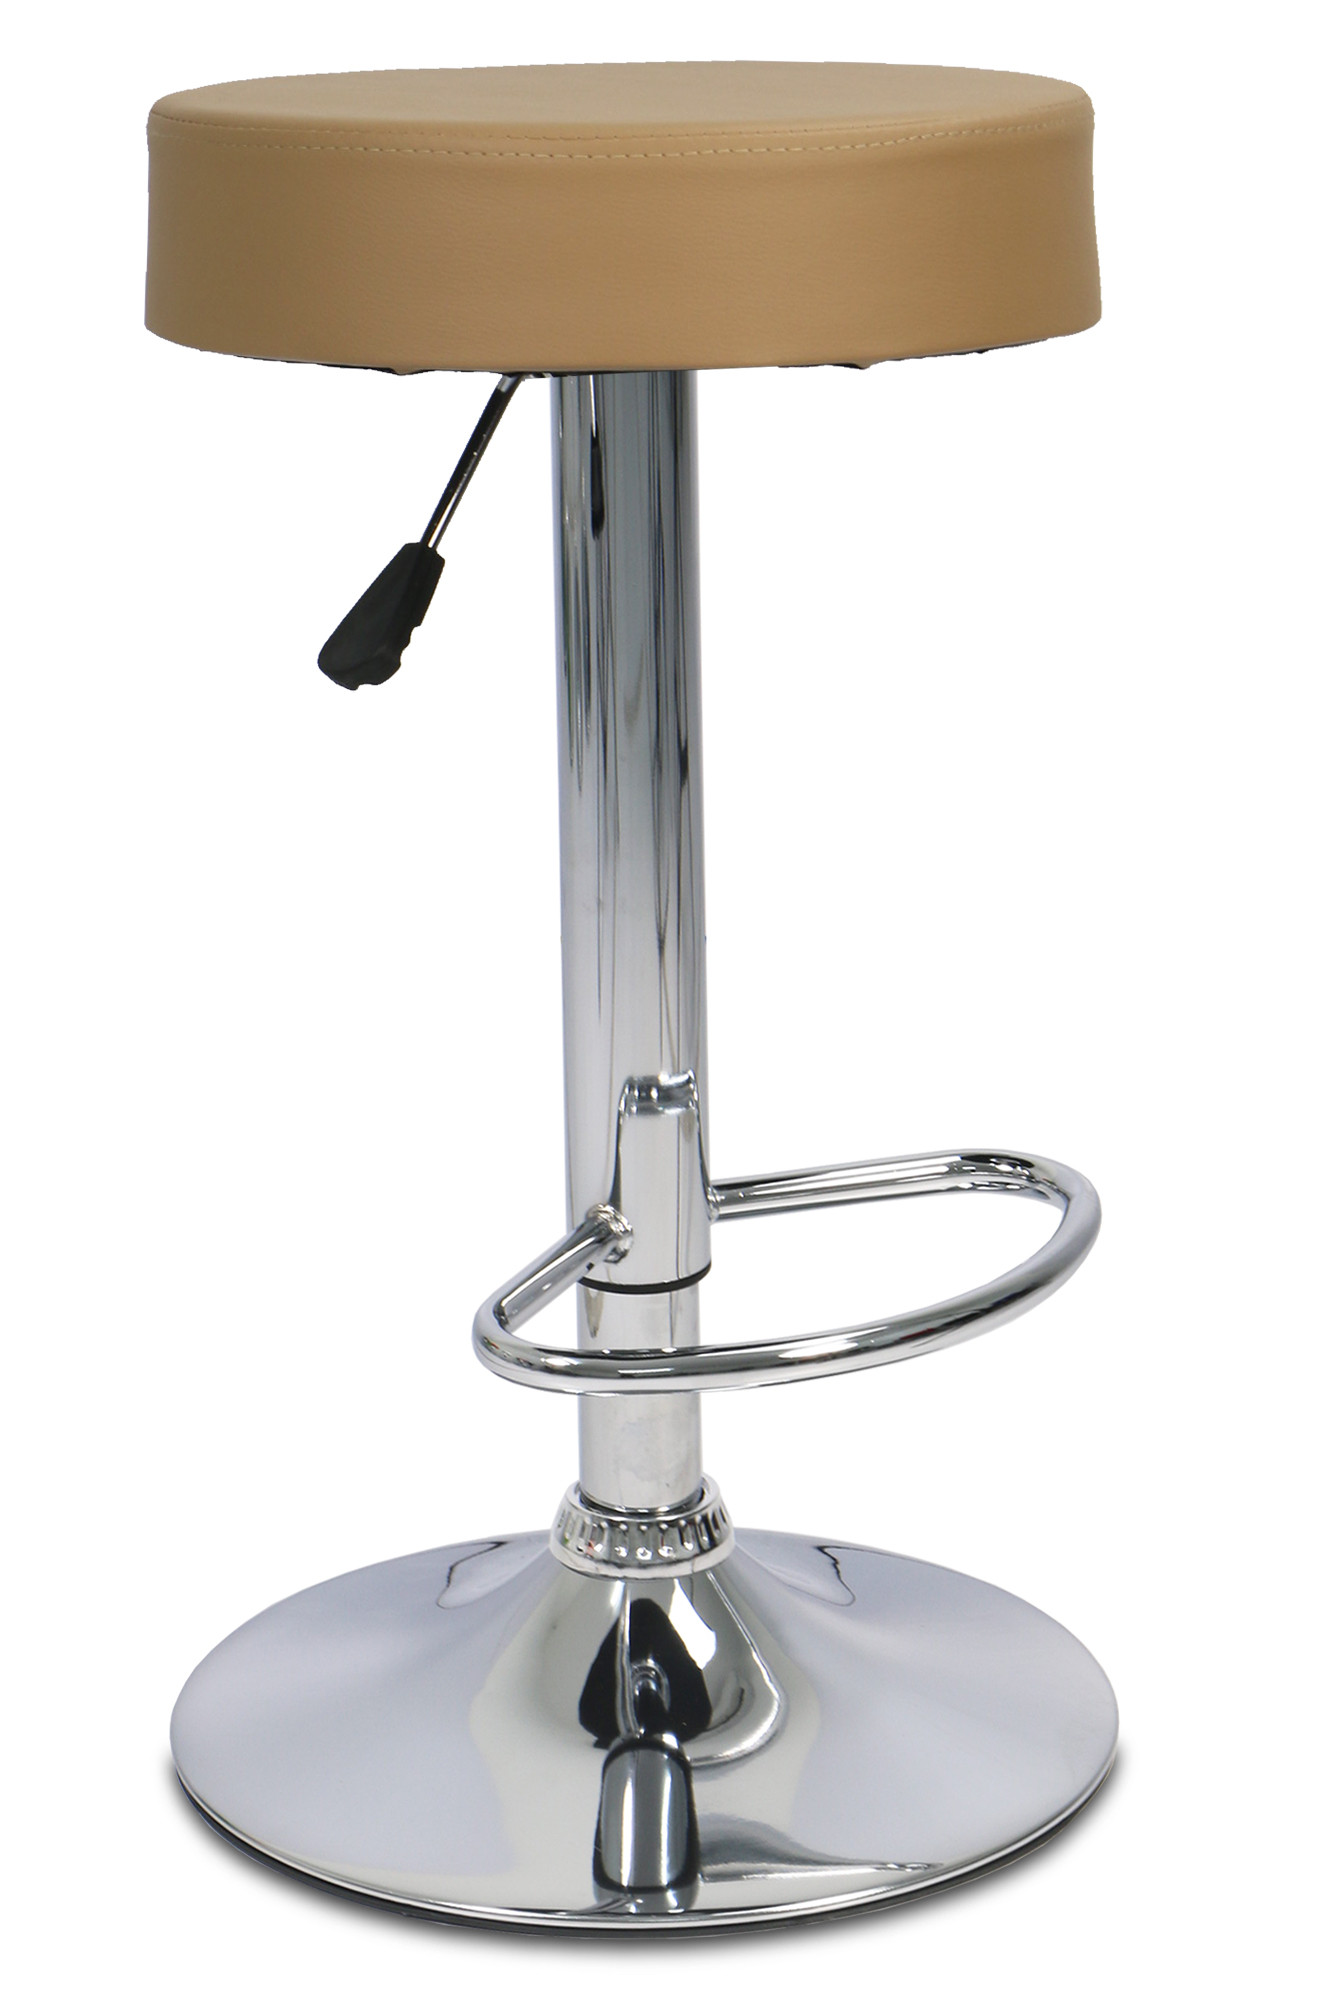 Living Room Stools Uk Roudy Bar Stool In Champagne Bar Stools Living Room